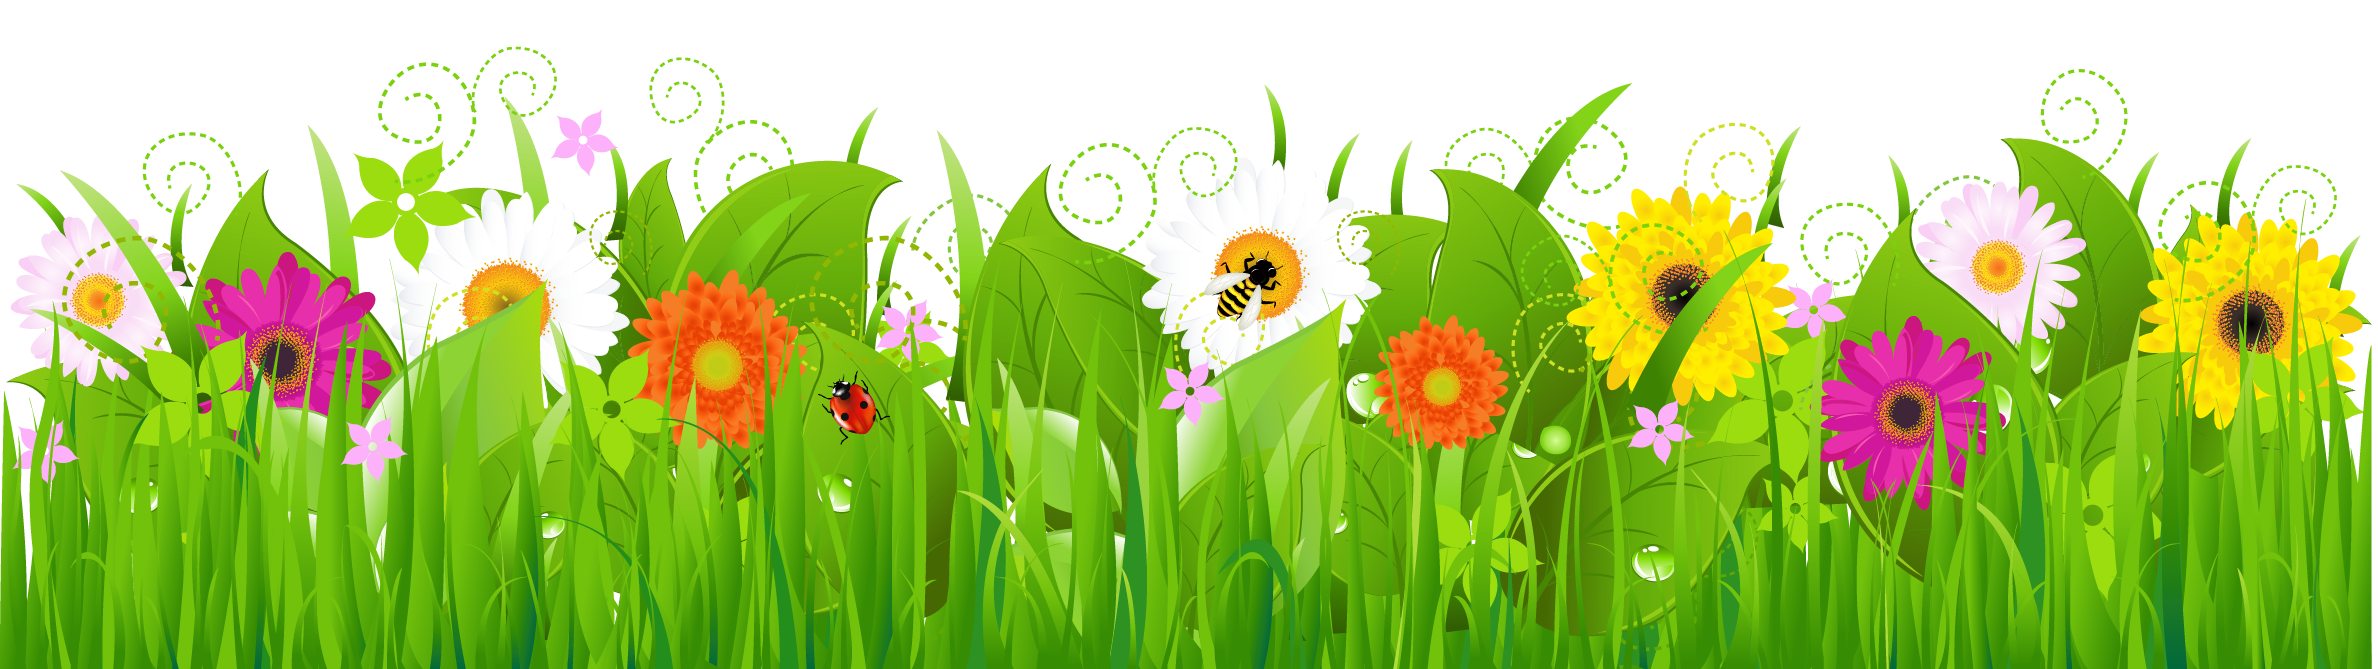 Flower clipart green jpg download Clip art grass clipart cliparts for you clipartix 2 | Diversos ... jpg download